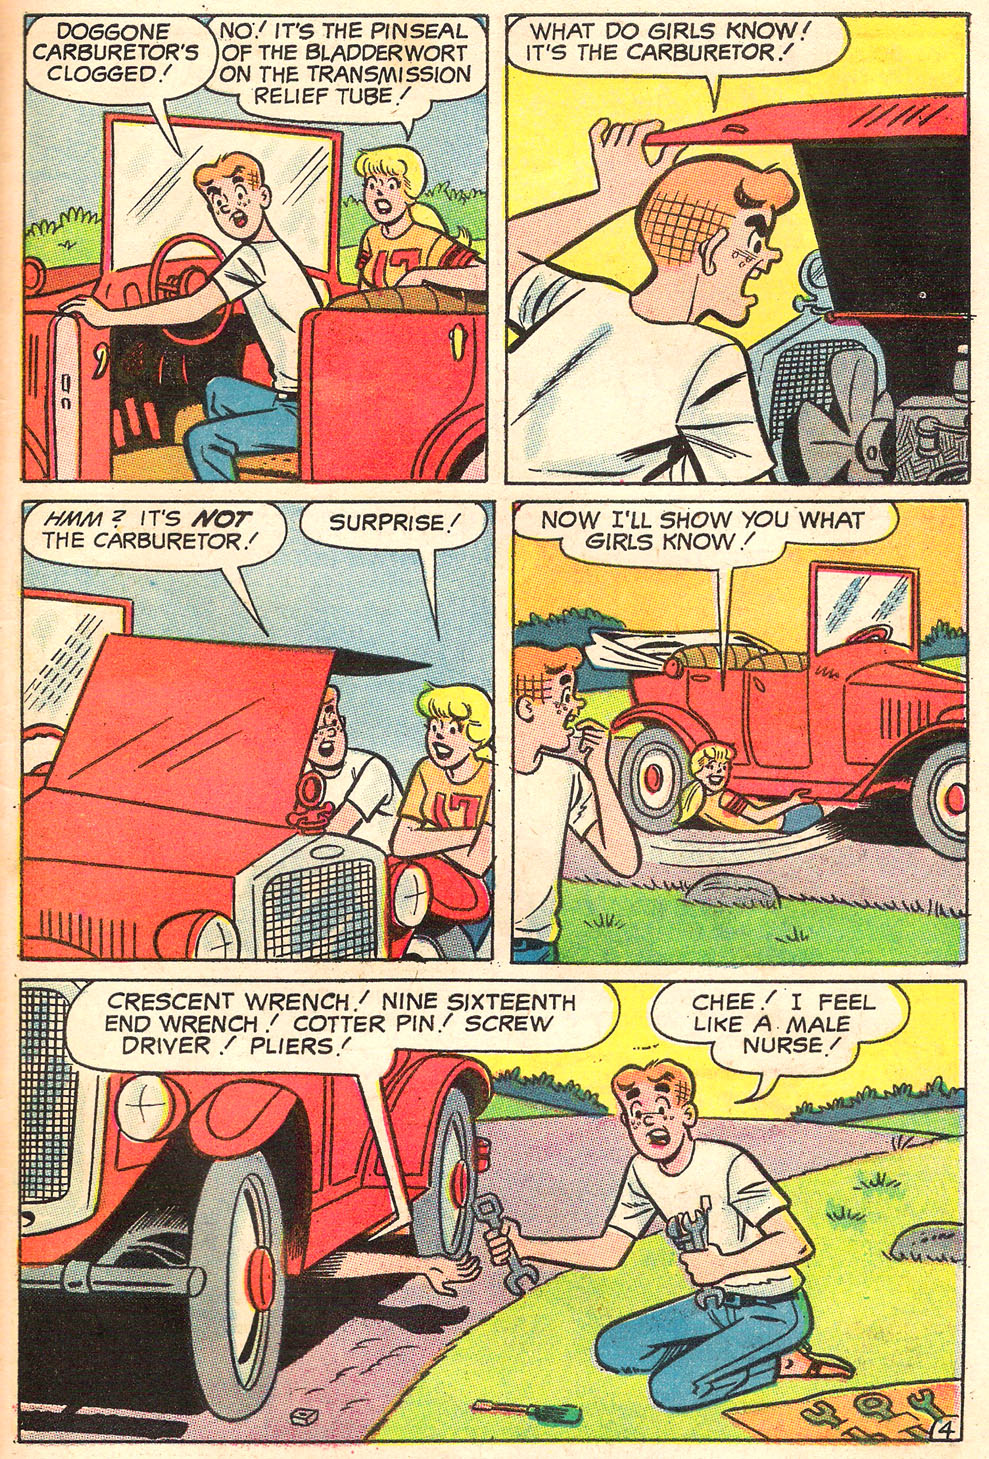 Read online Archie's Girls Betty and Veronica comic -  Issue #155 - 30